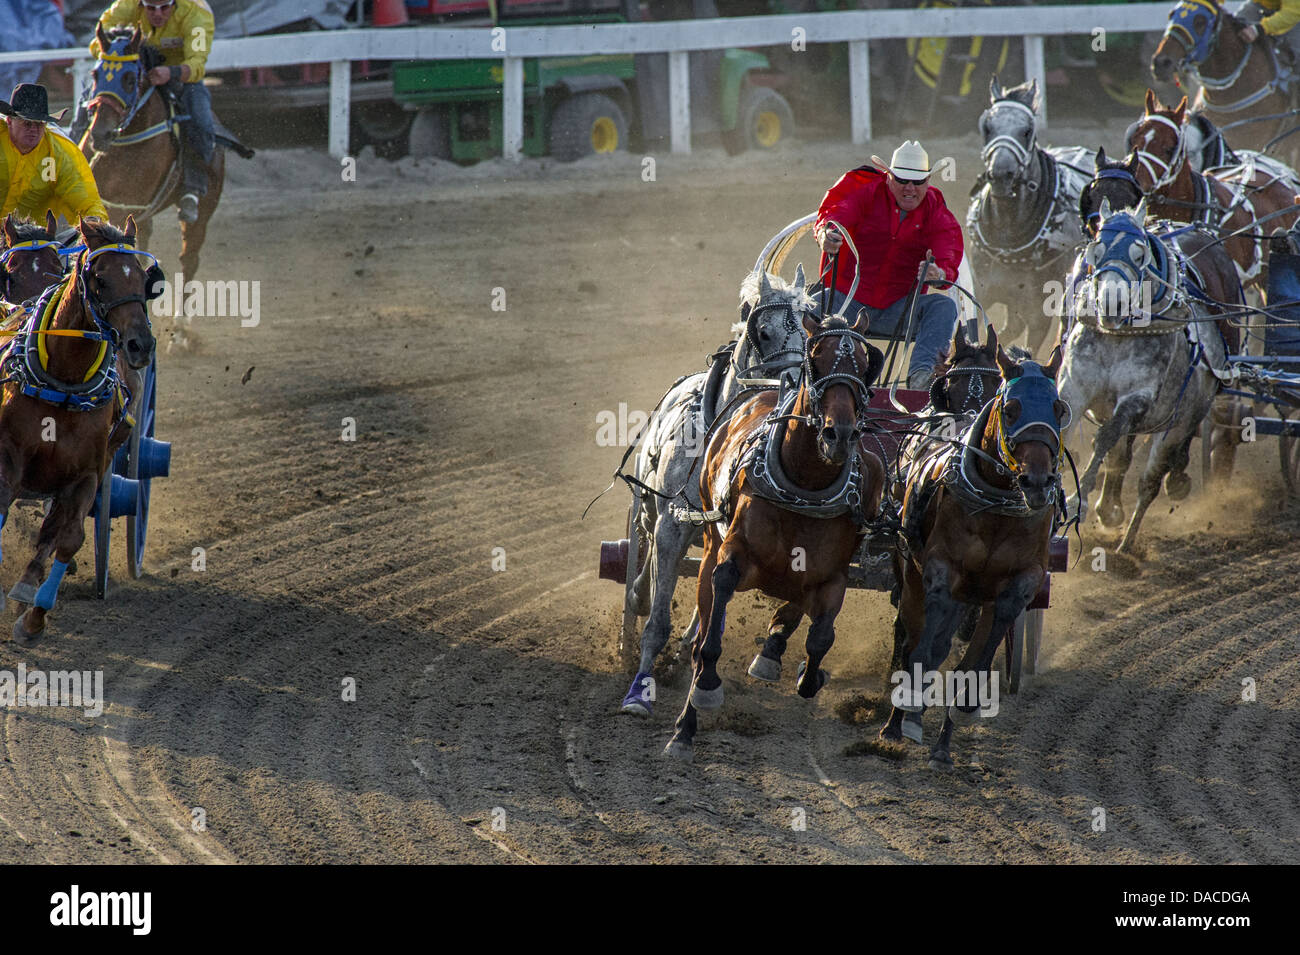 chuckwagon-race-at-the-calgary-stampede-